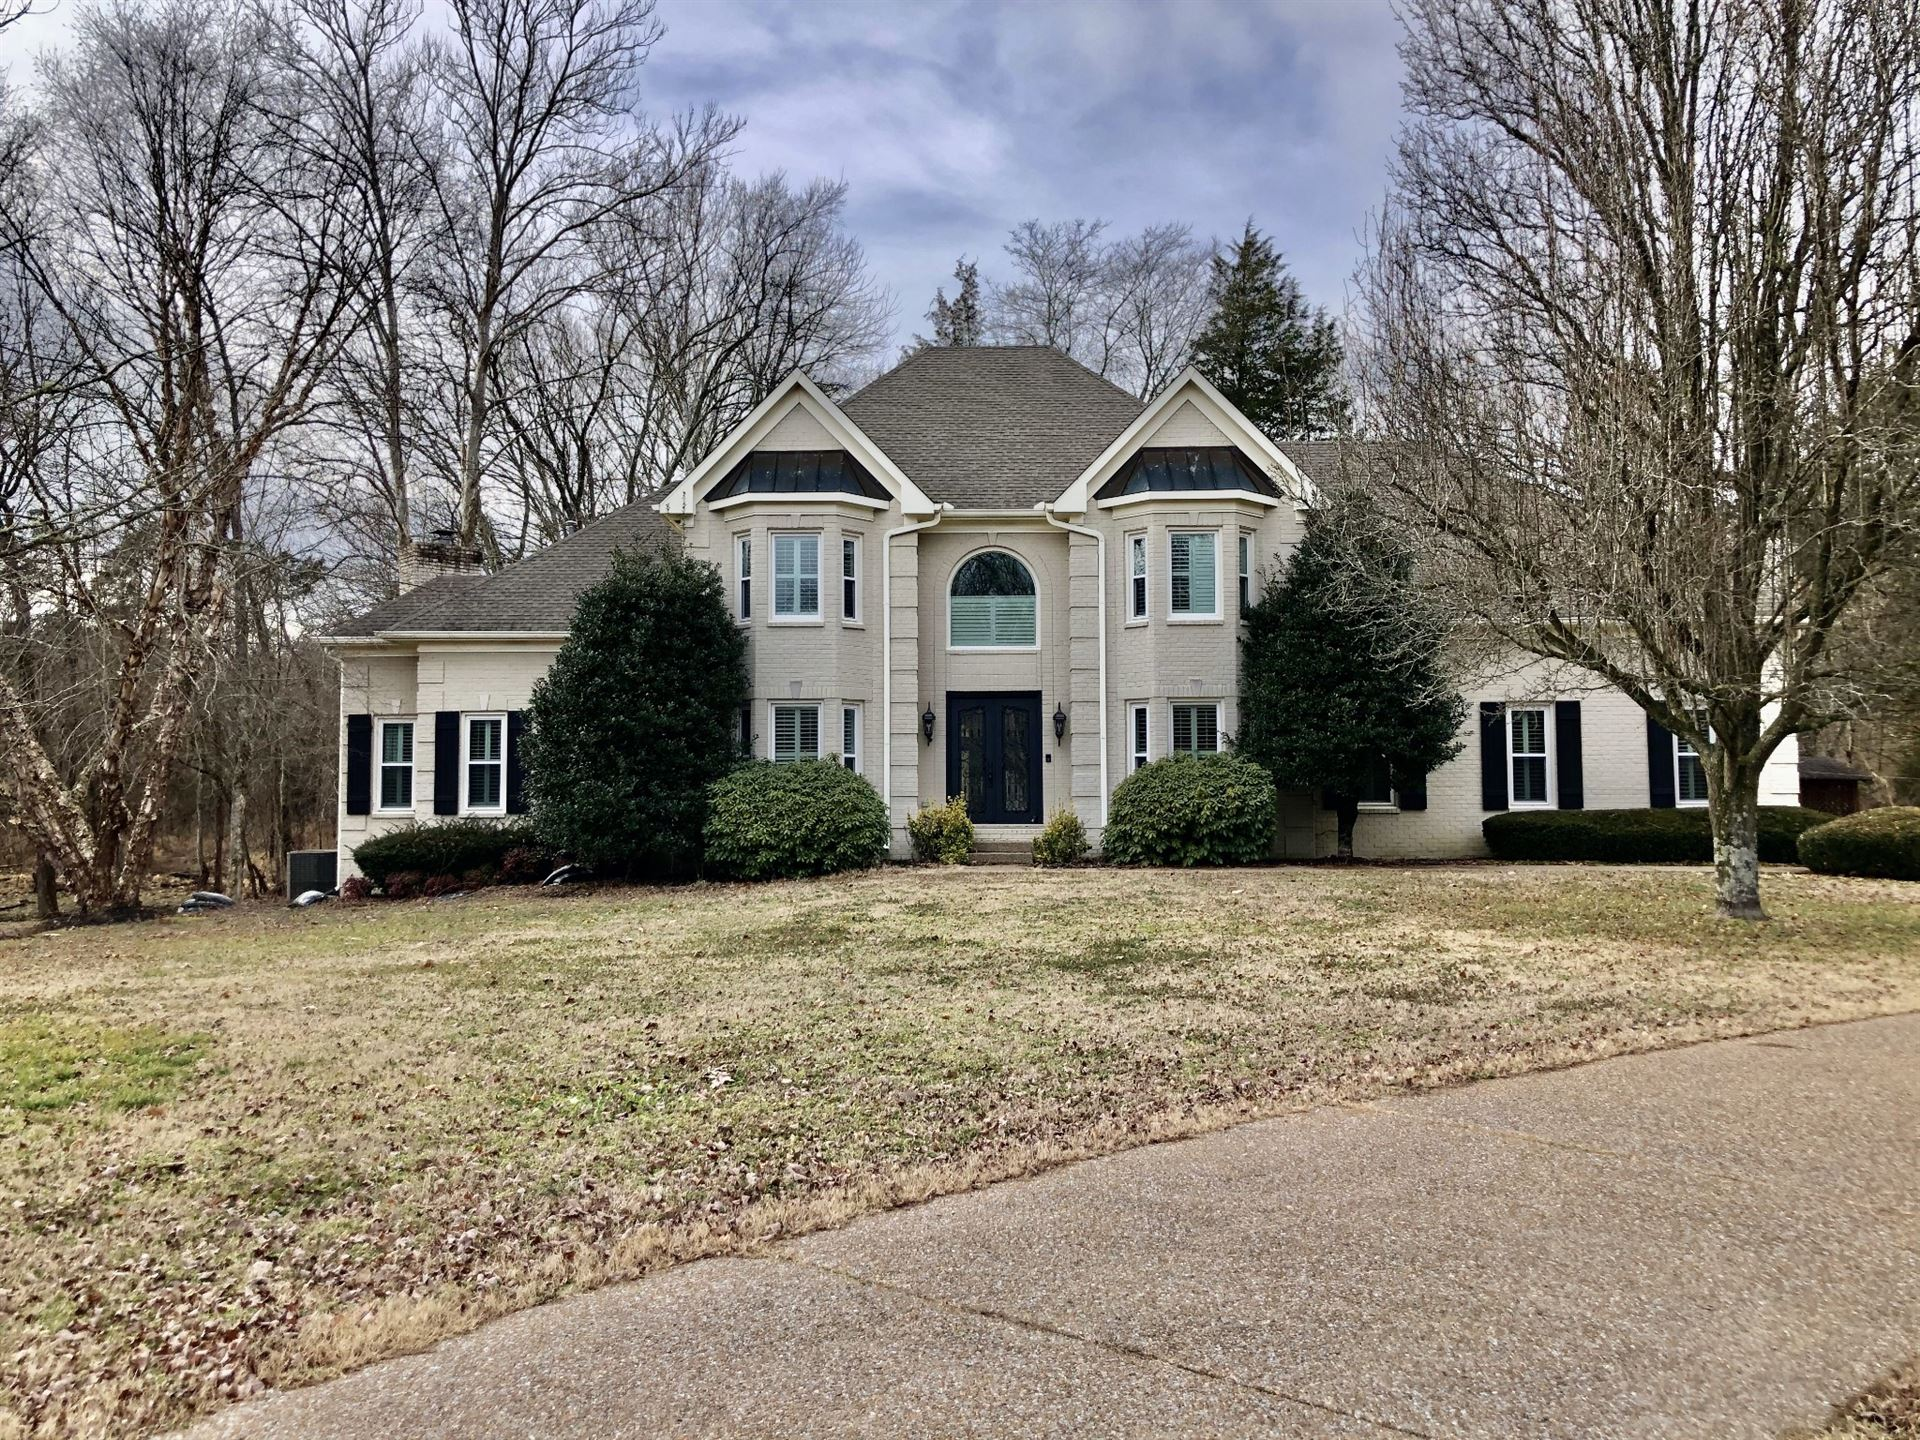 Photo of 9530 Thoroughbred Way, Brentwood, TN 37027 (MLS # 2222253)